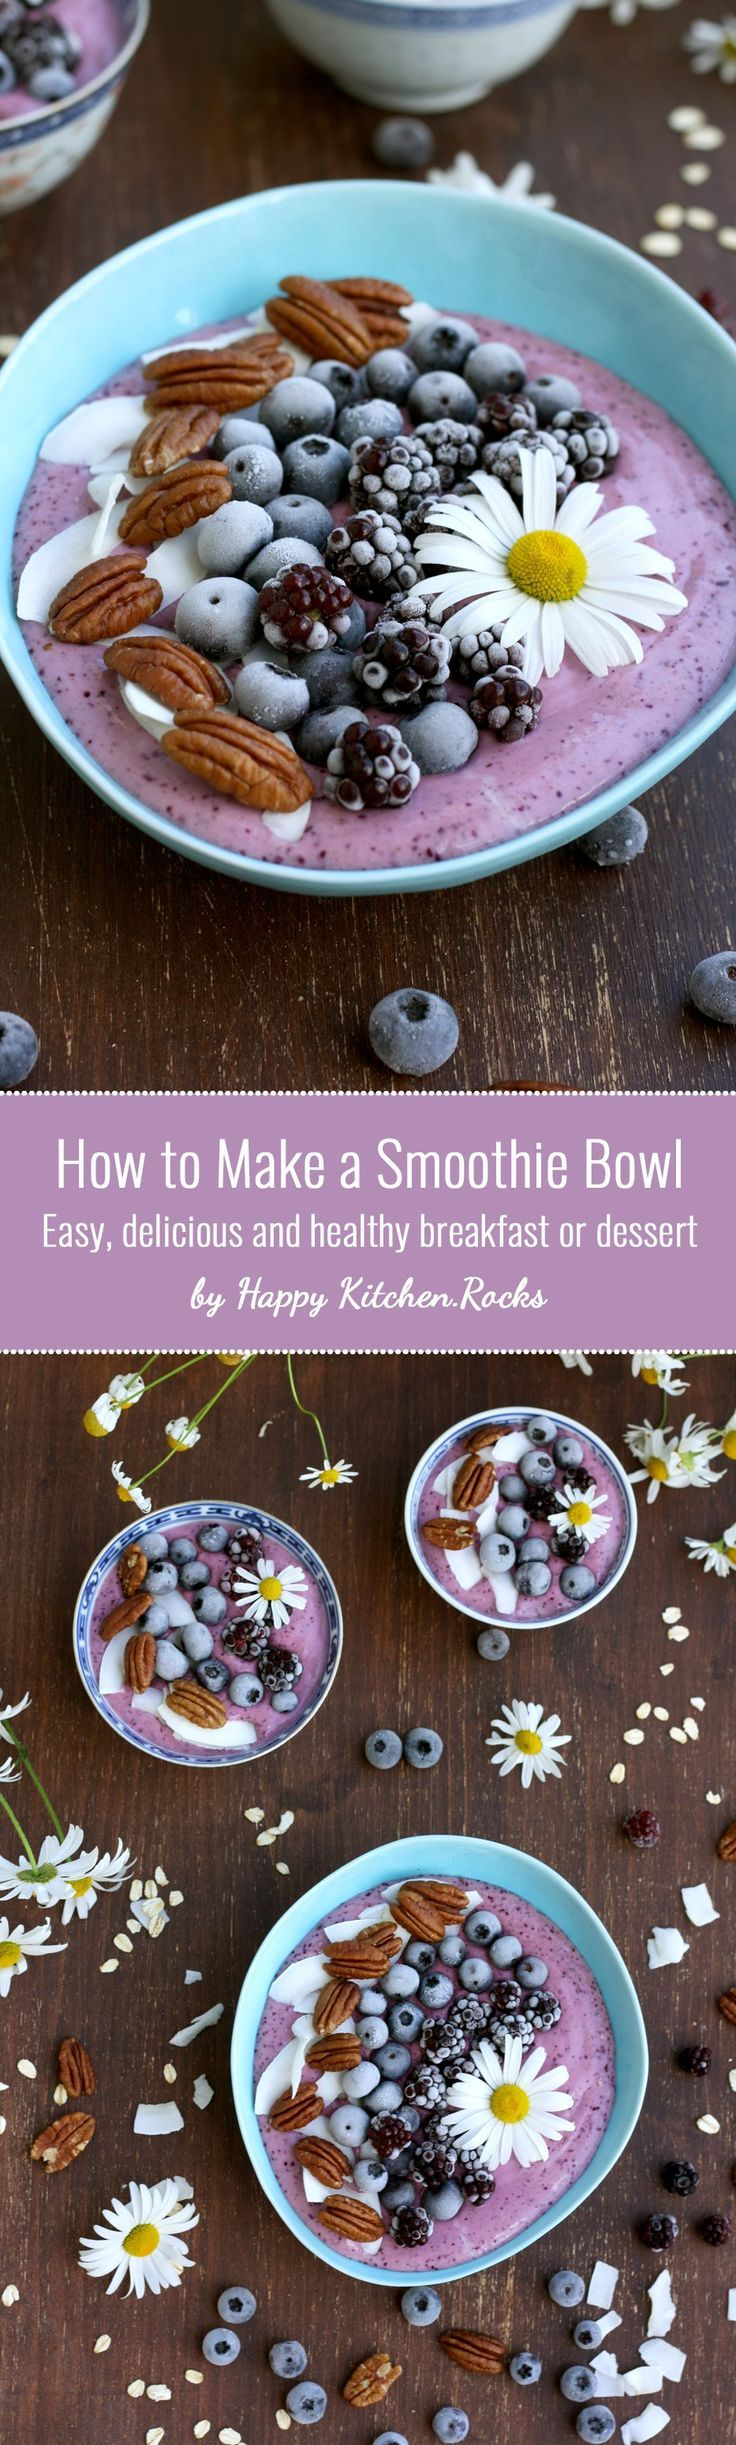 Easy and delicious 5-minute smoothie bowl recipe with customizable ingredients…